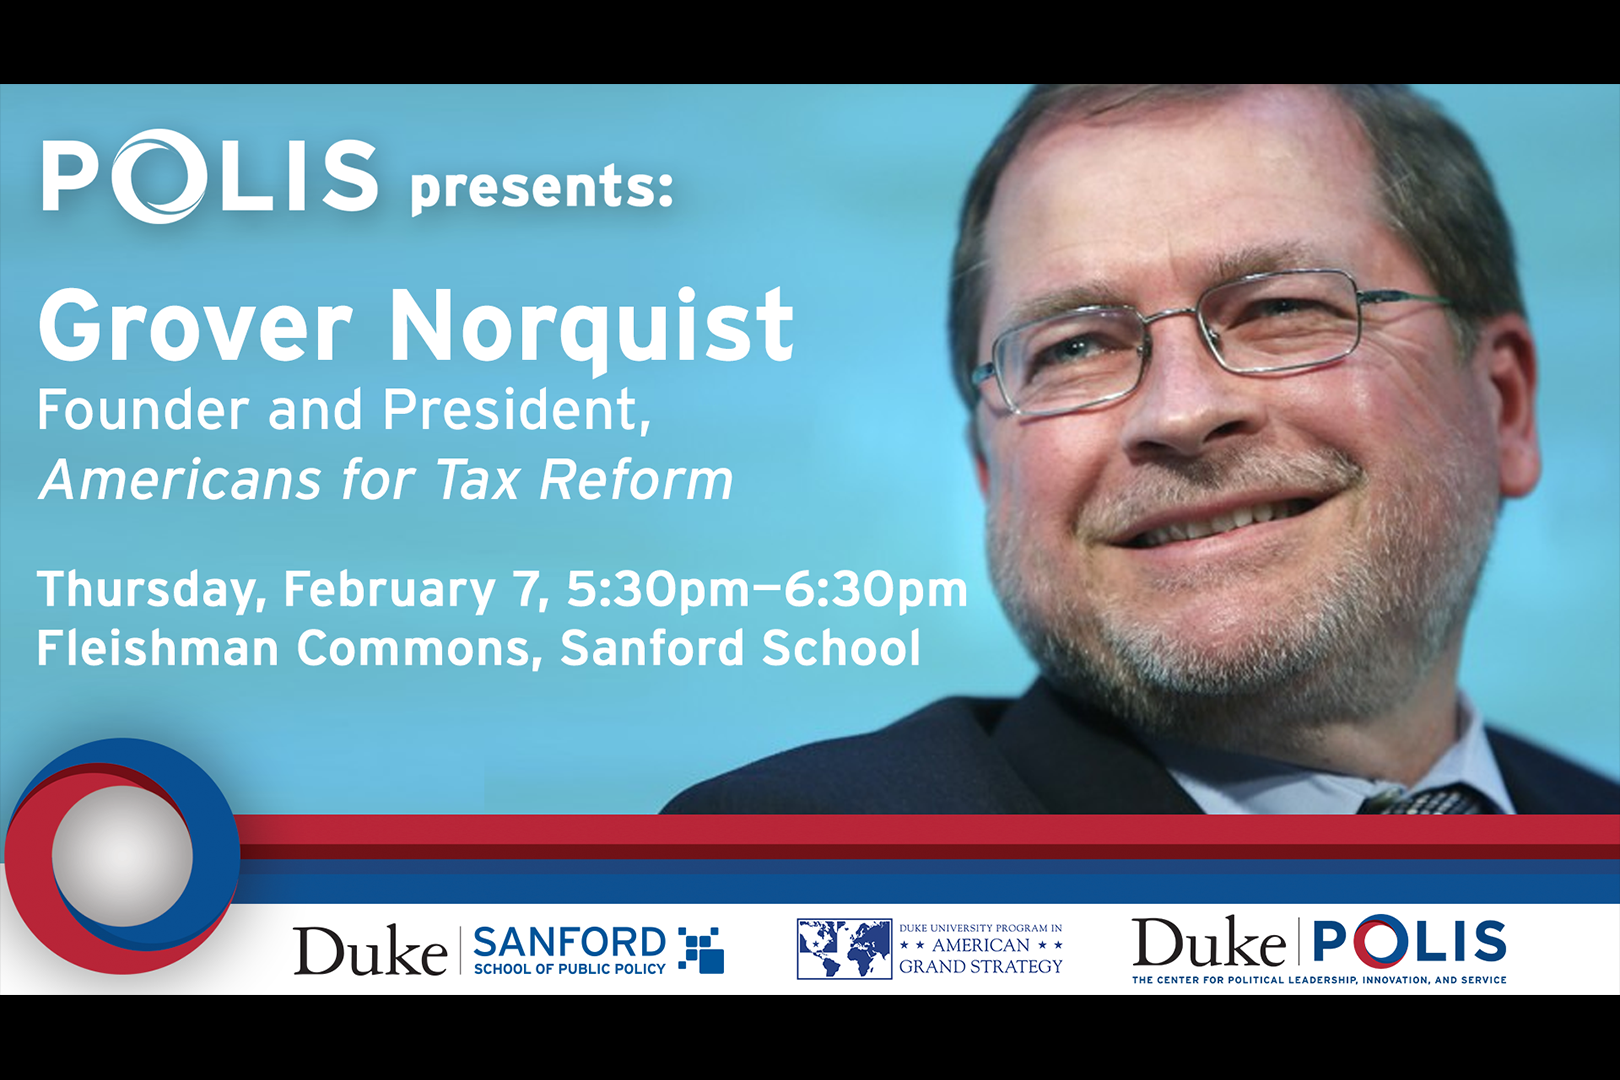 POLIS presents Grover Norquist, Founder and President, Americans for Tax Reform